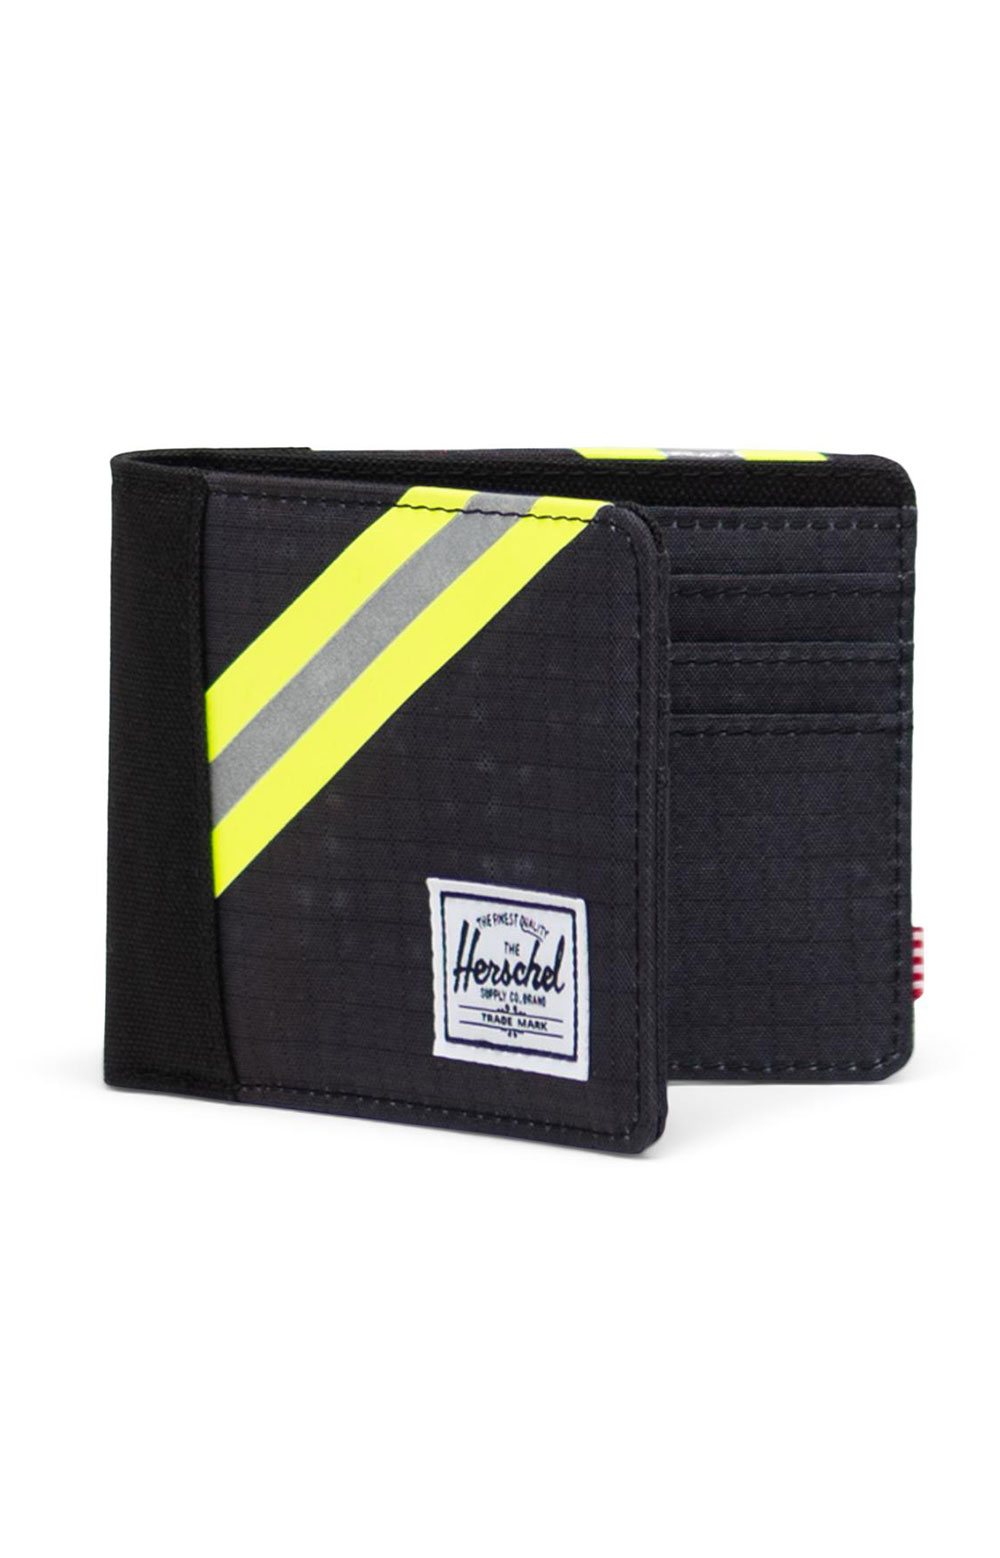 Roy Wallet - Black Enzyme Ripstop/Black/Safety Yellow 3